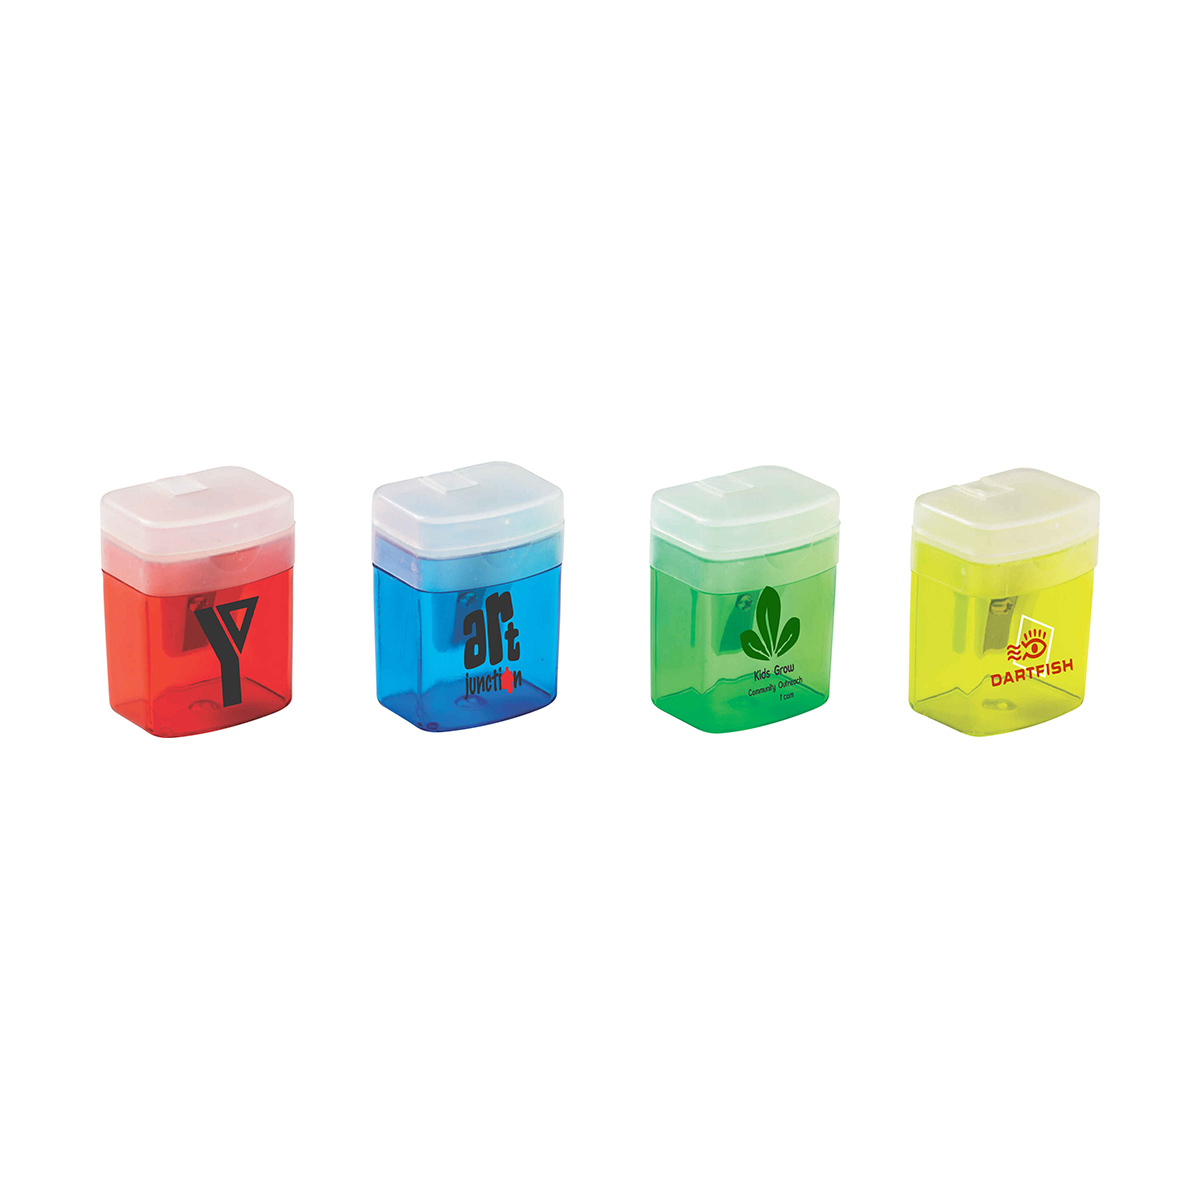 Translucent Pencil Sharpener with Flip-Top Lids